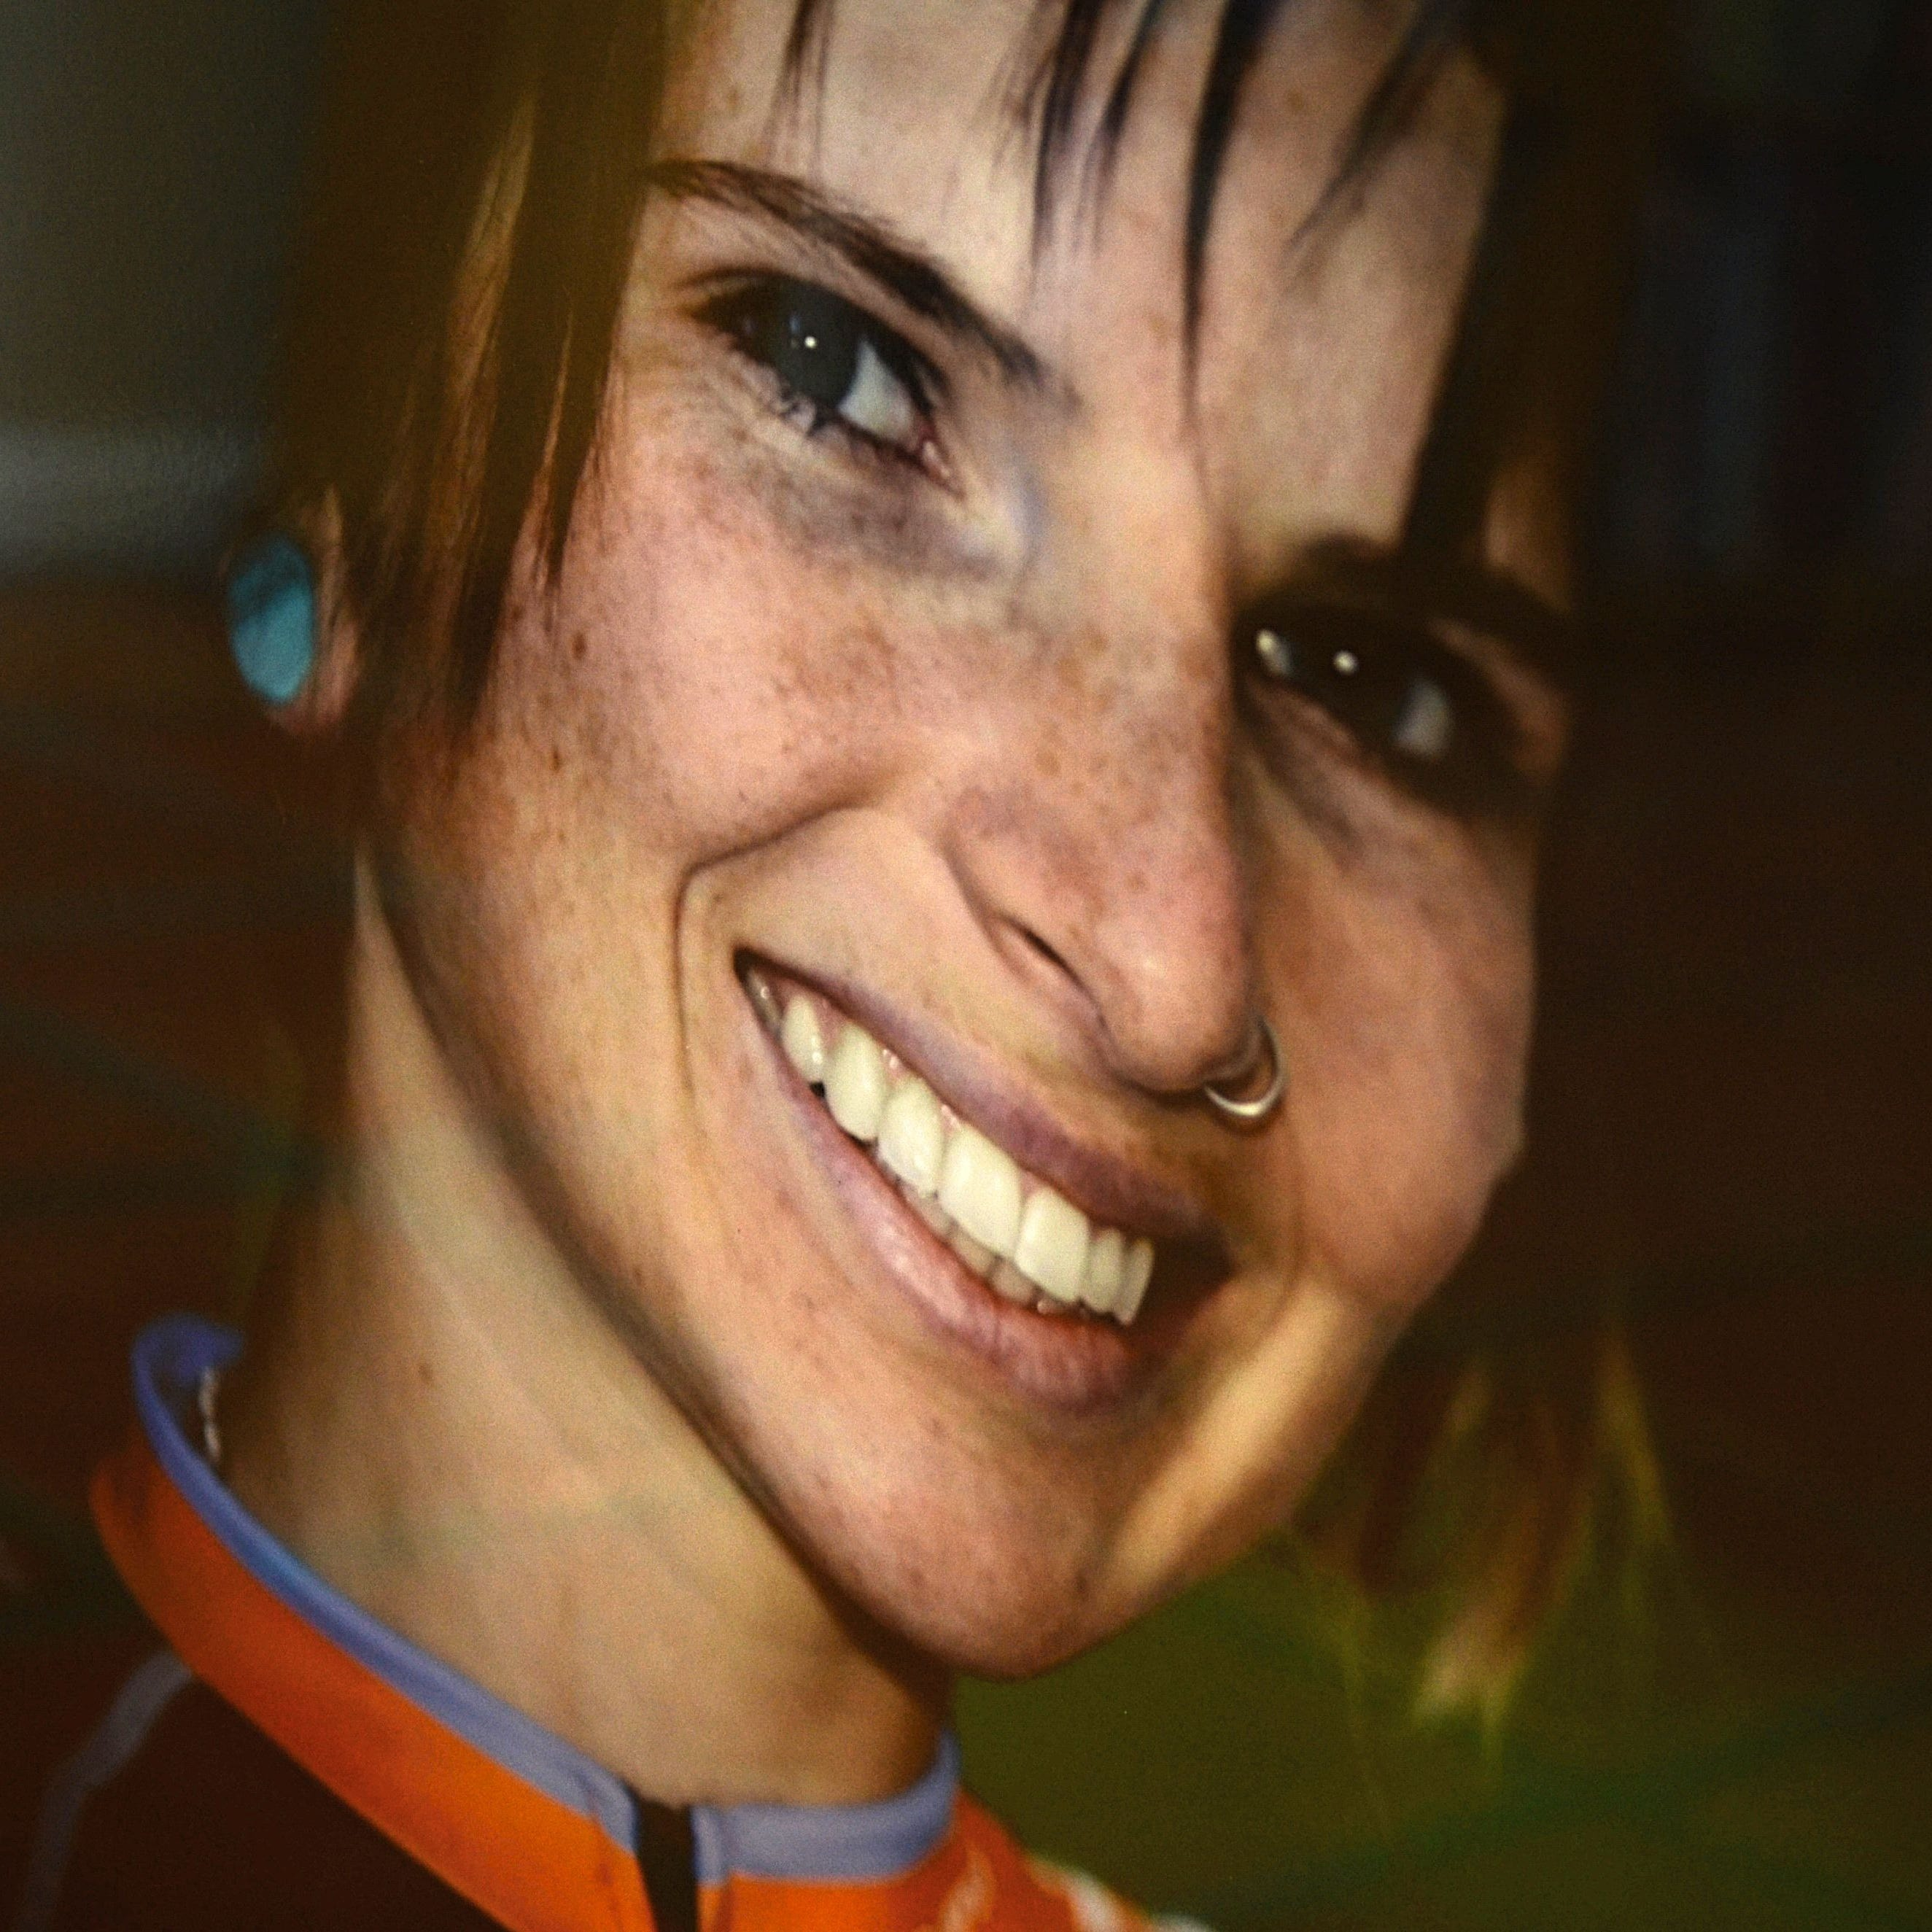 Reno cyclist Erica Greif is still inspiring others, 3 years after her death